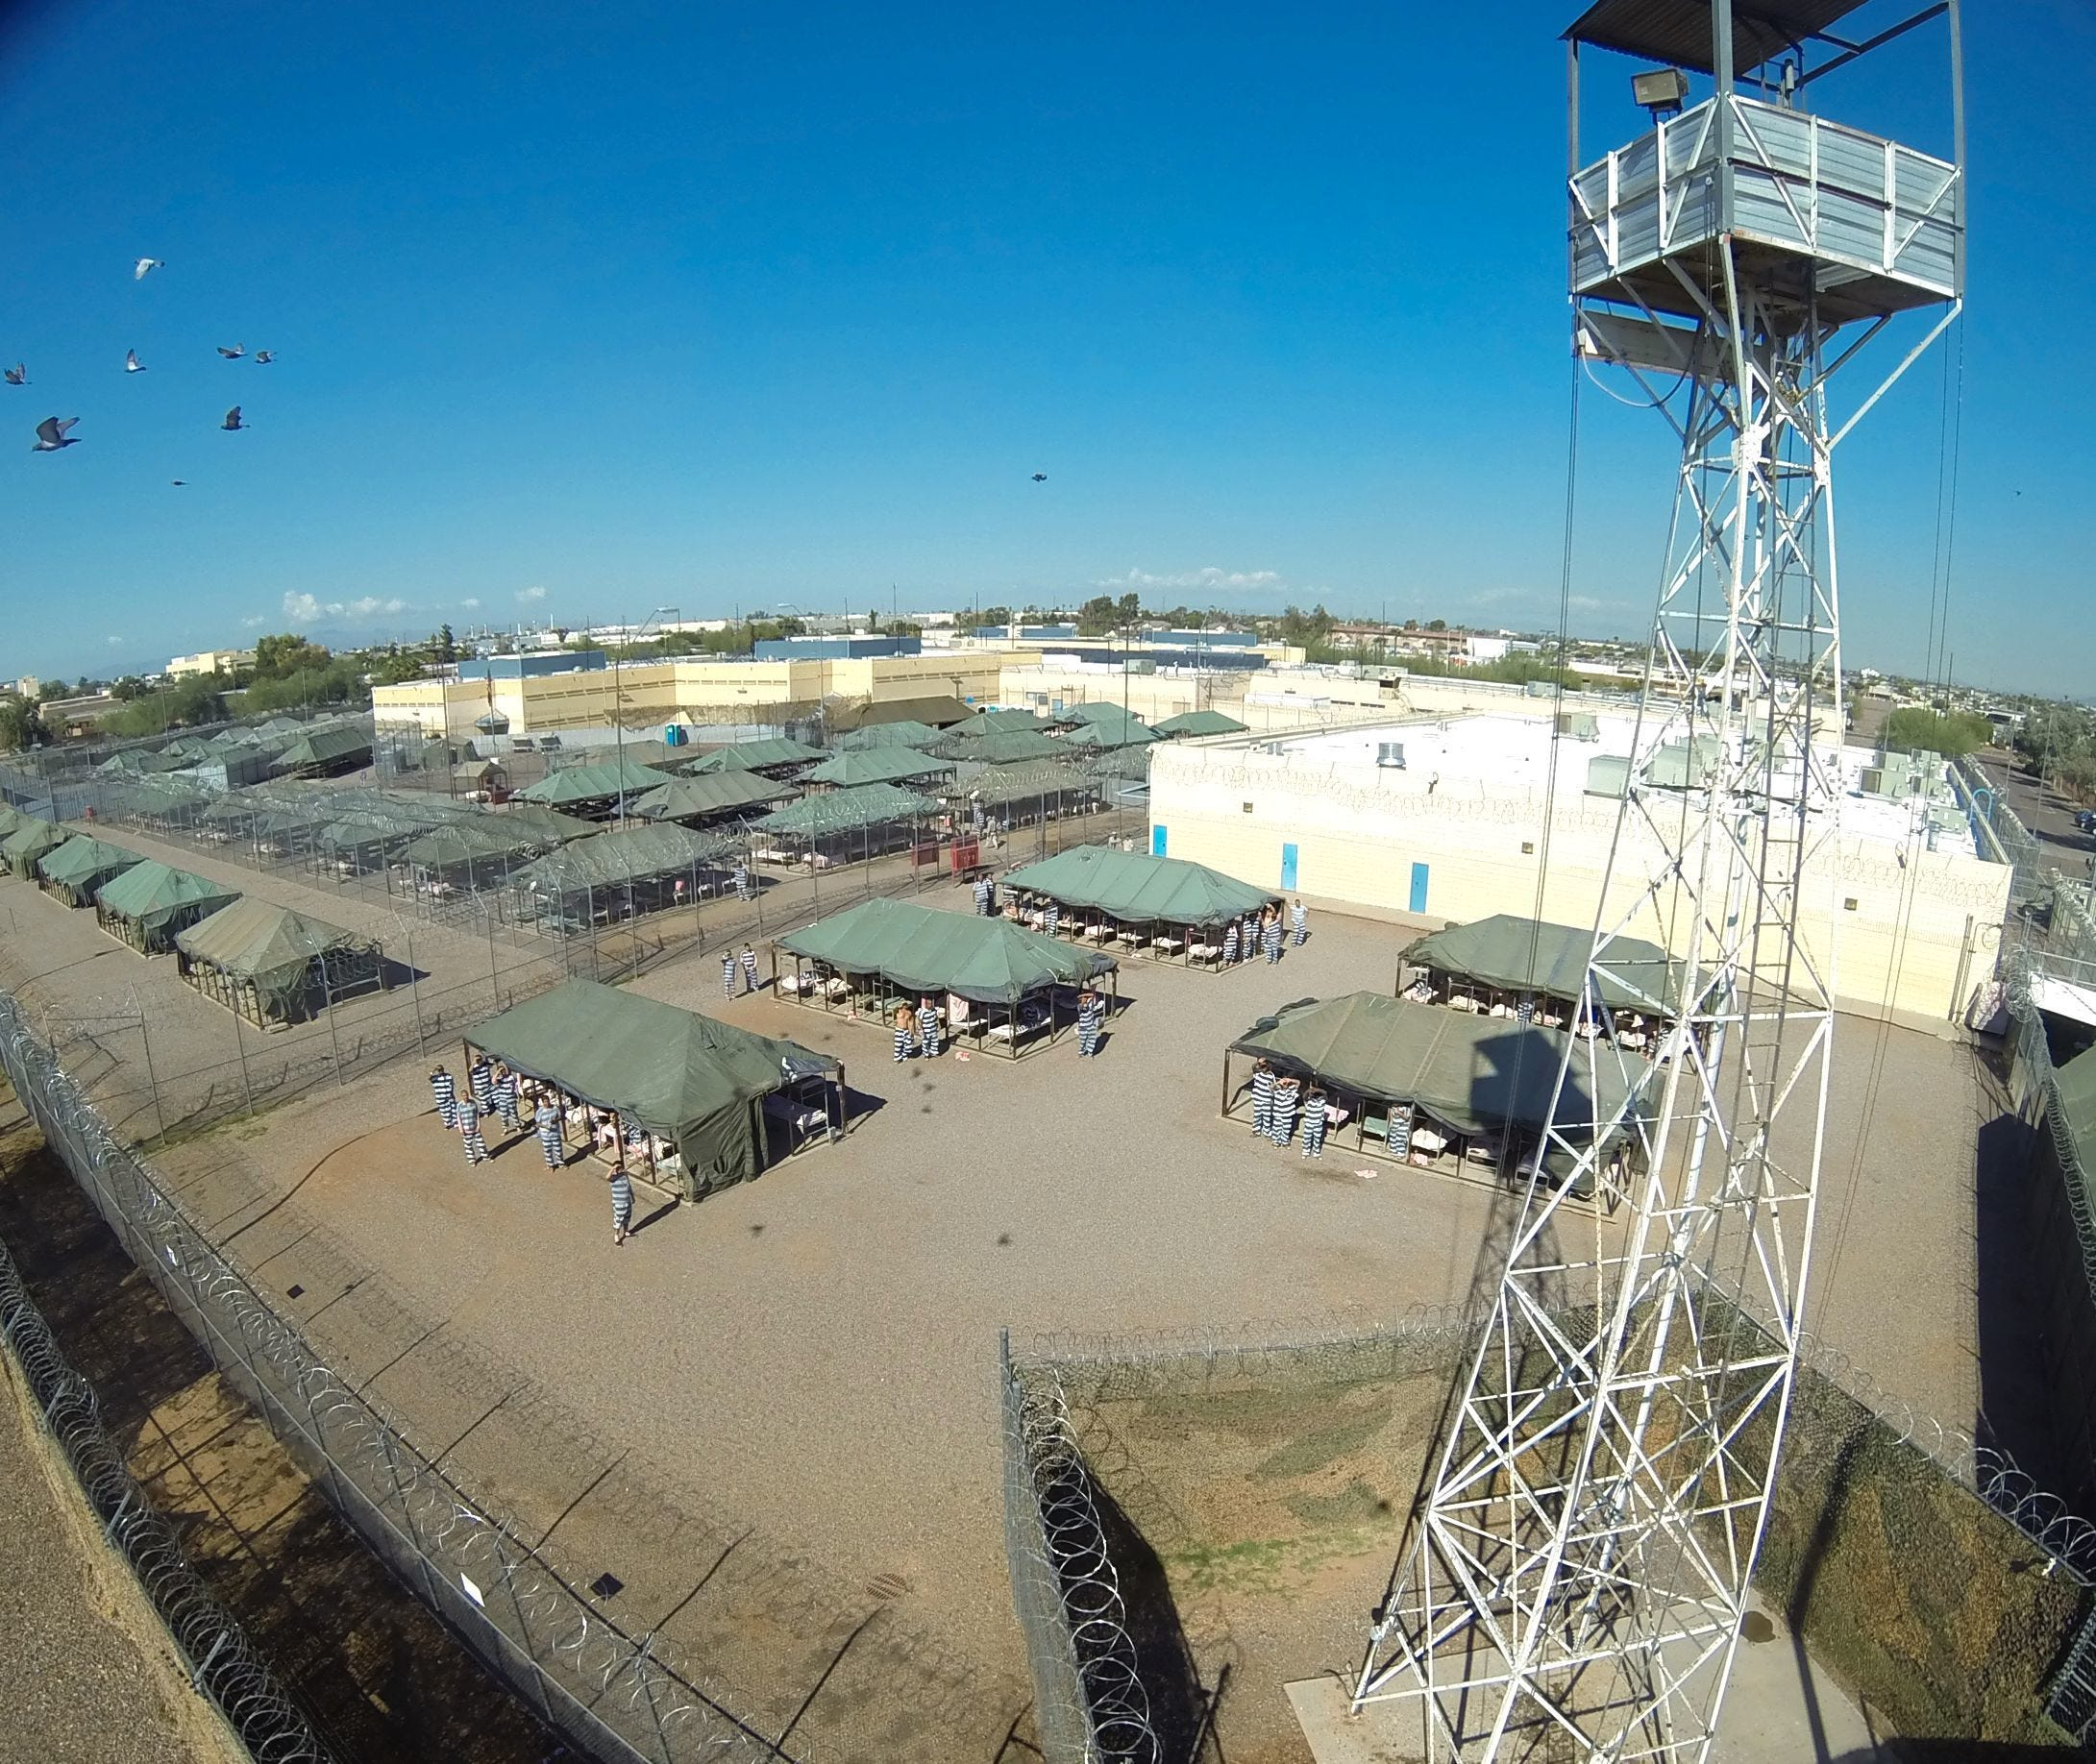 & Maricopa Countyu0027s Tent City still housing 350 inmates during heat wave